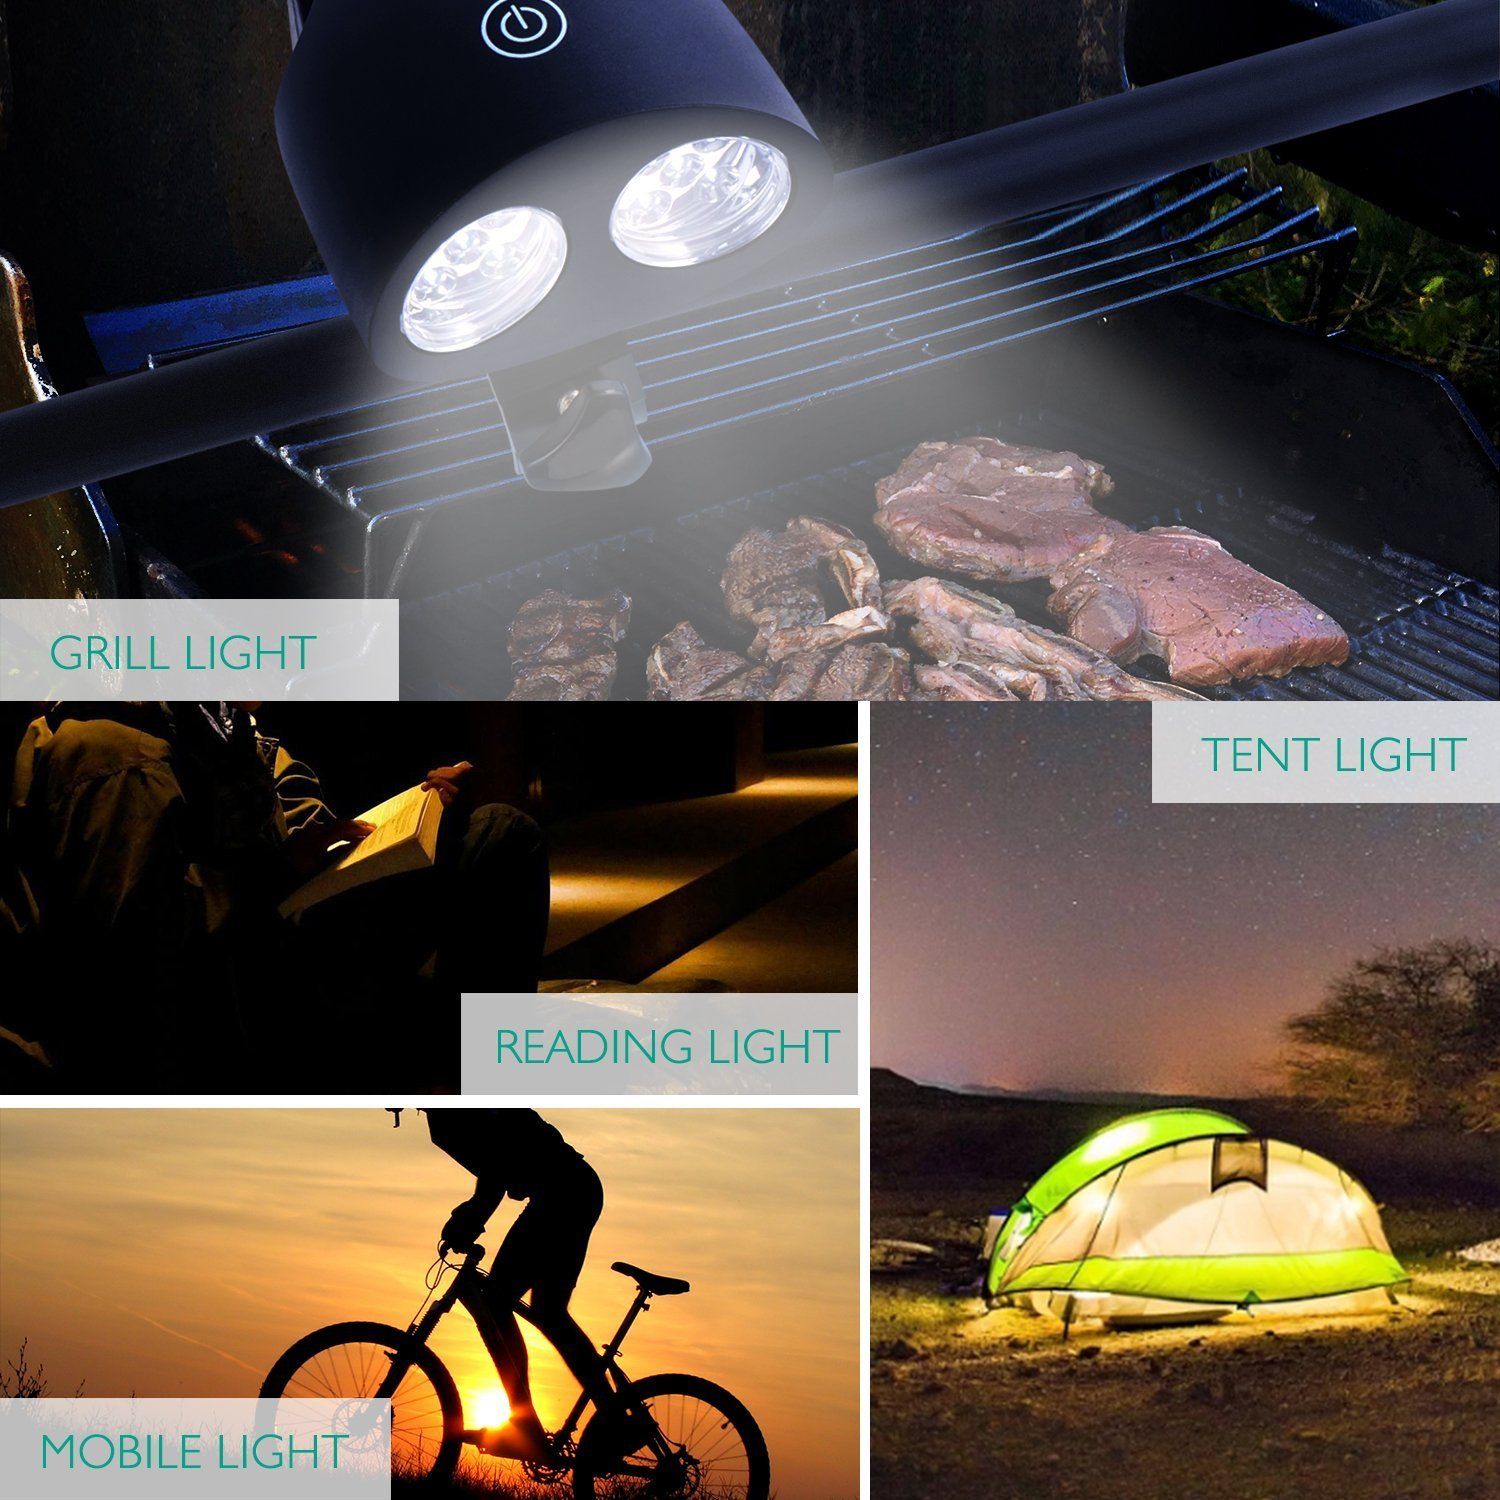 Zeust Grill Light 10 LED Super Bright Barbecue Grill Lights Weather Resistant 120 Lumen 360 Degree Rotation BBQ Light Outdoor Grill Light Accessories Barbecue Accessories Handle Mount for BBQ